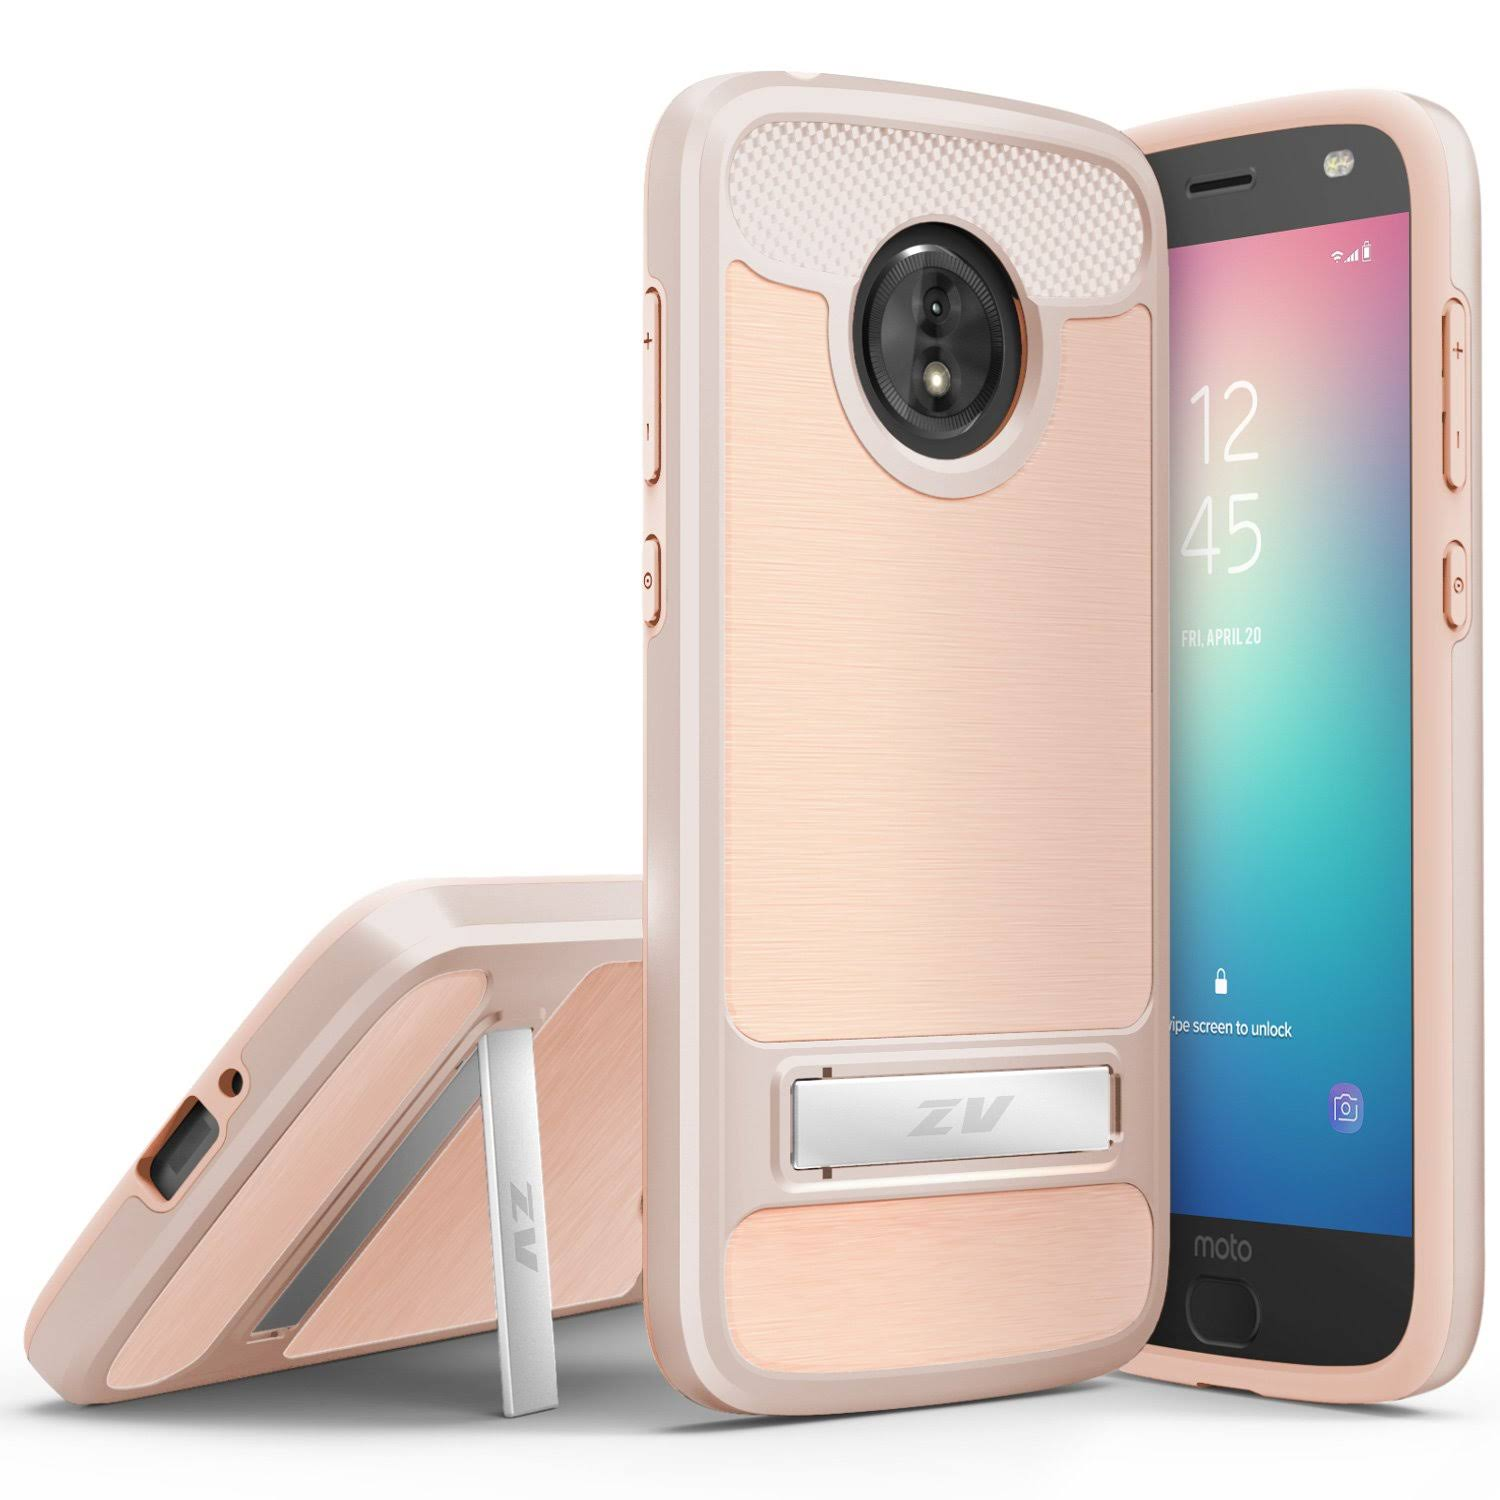 ZV Moto E5 Cruise PC Plus SC Hybrid Case - Lightweight, Dual Layered with Built in Kickstand, Rose Gold